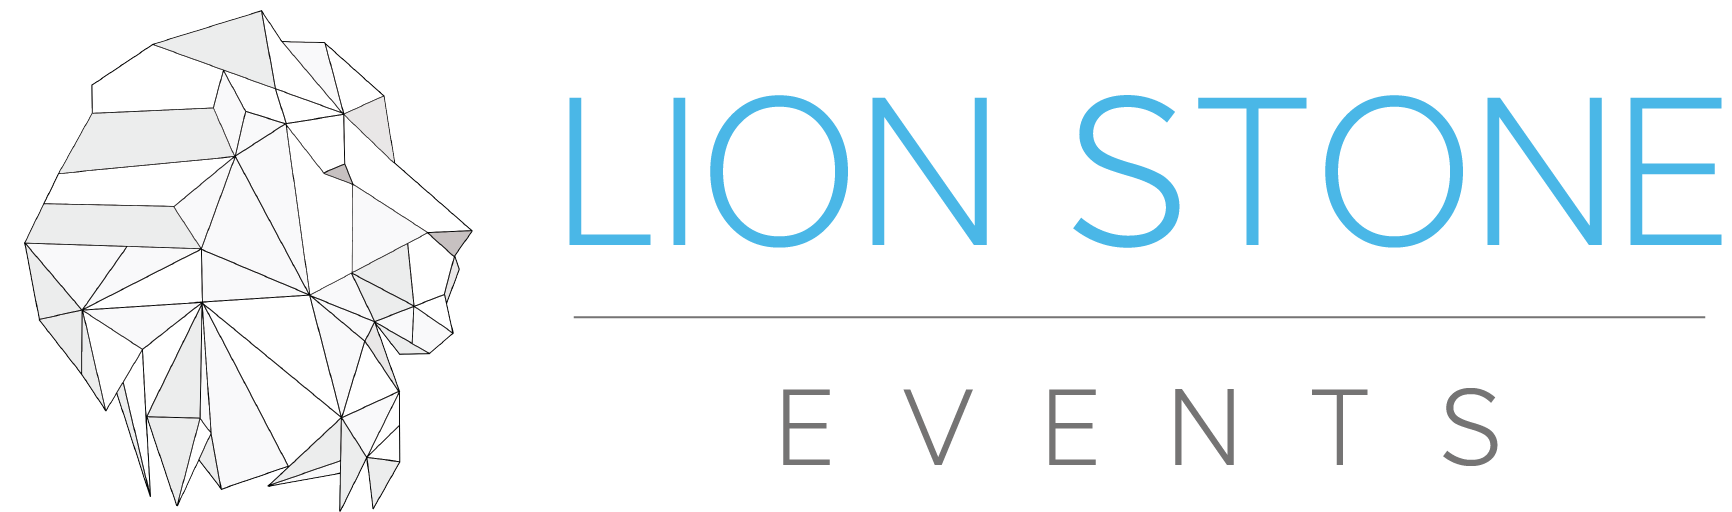 Lion Stone Events